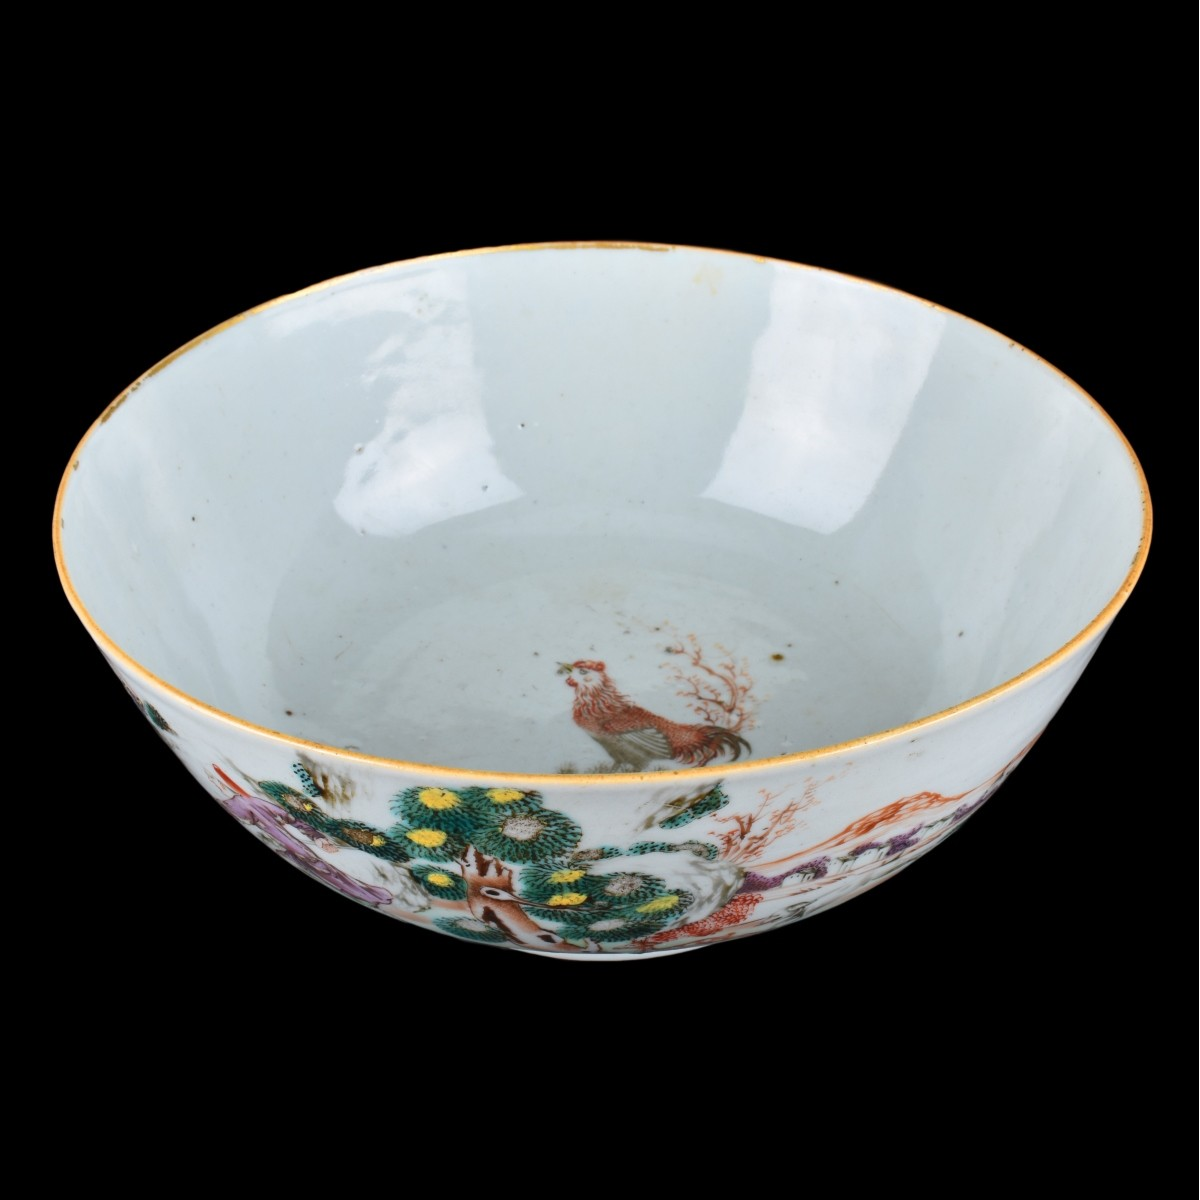 18th C Chinese Porcelain Bowl